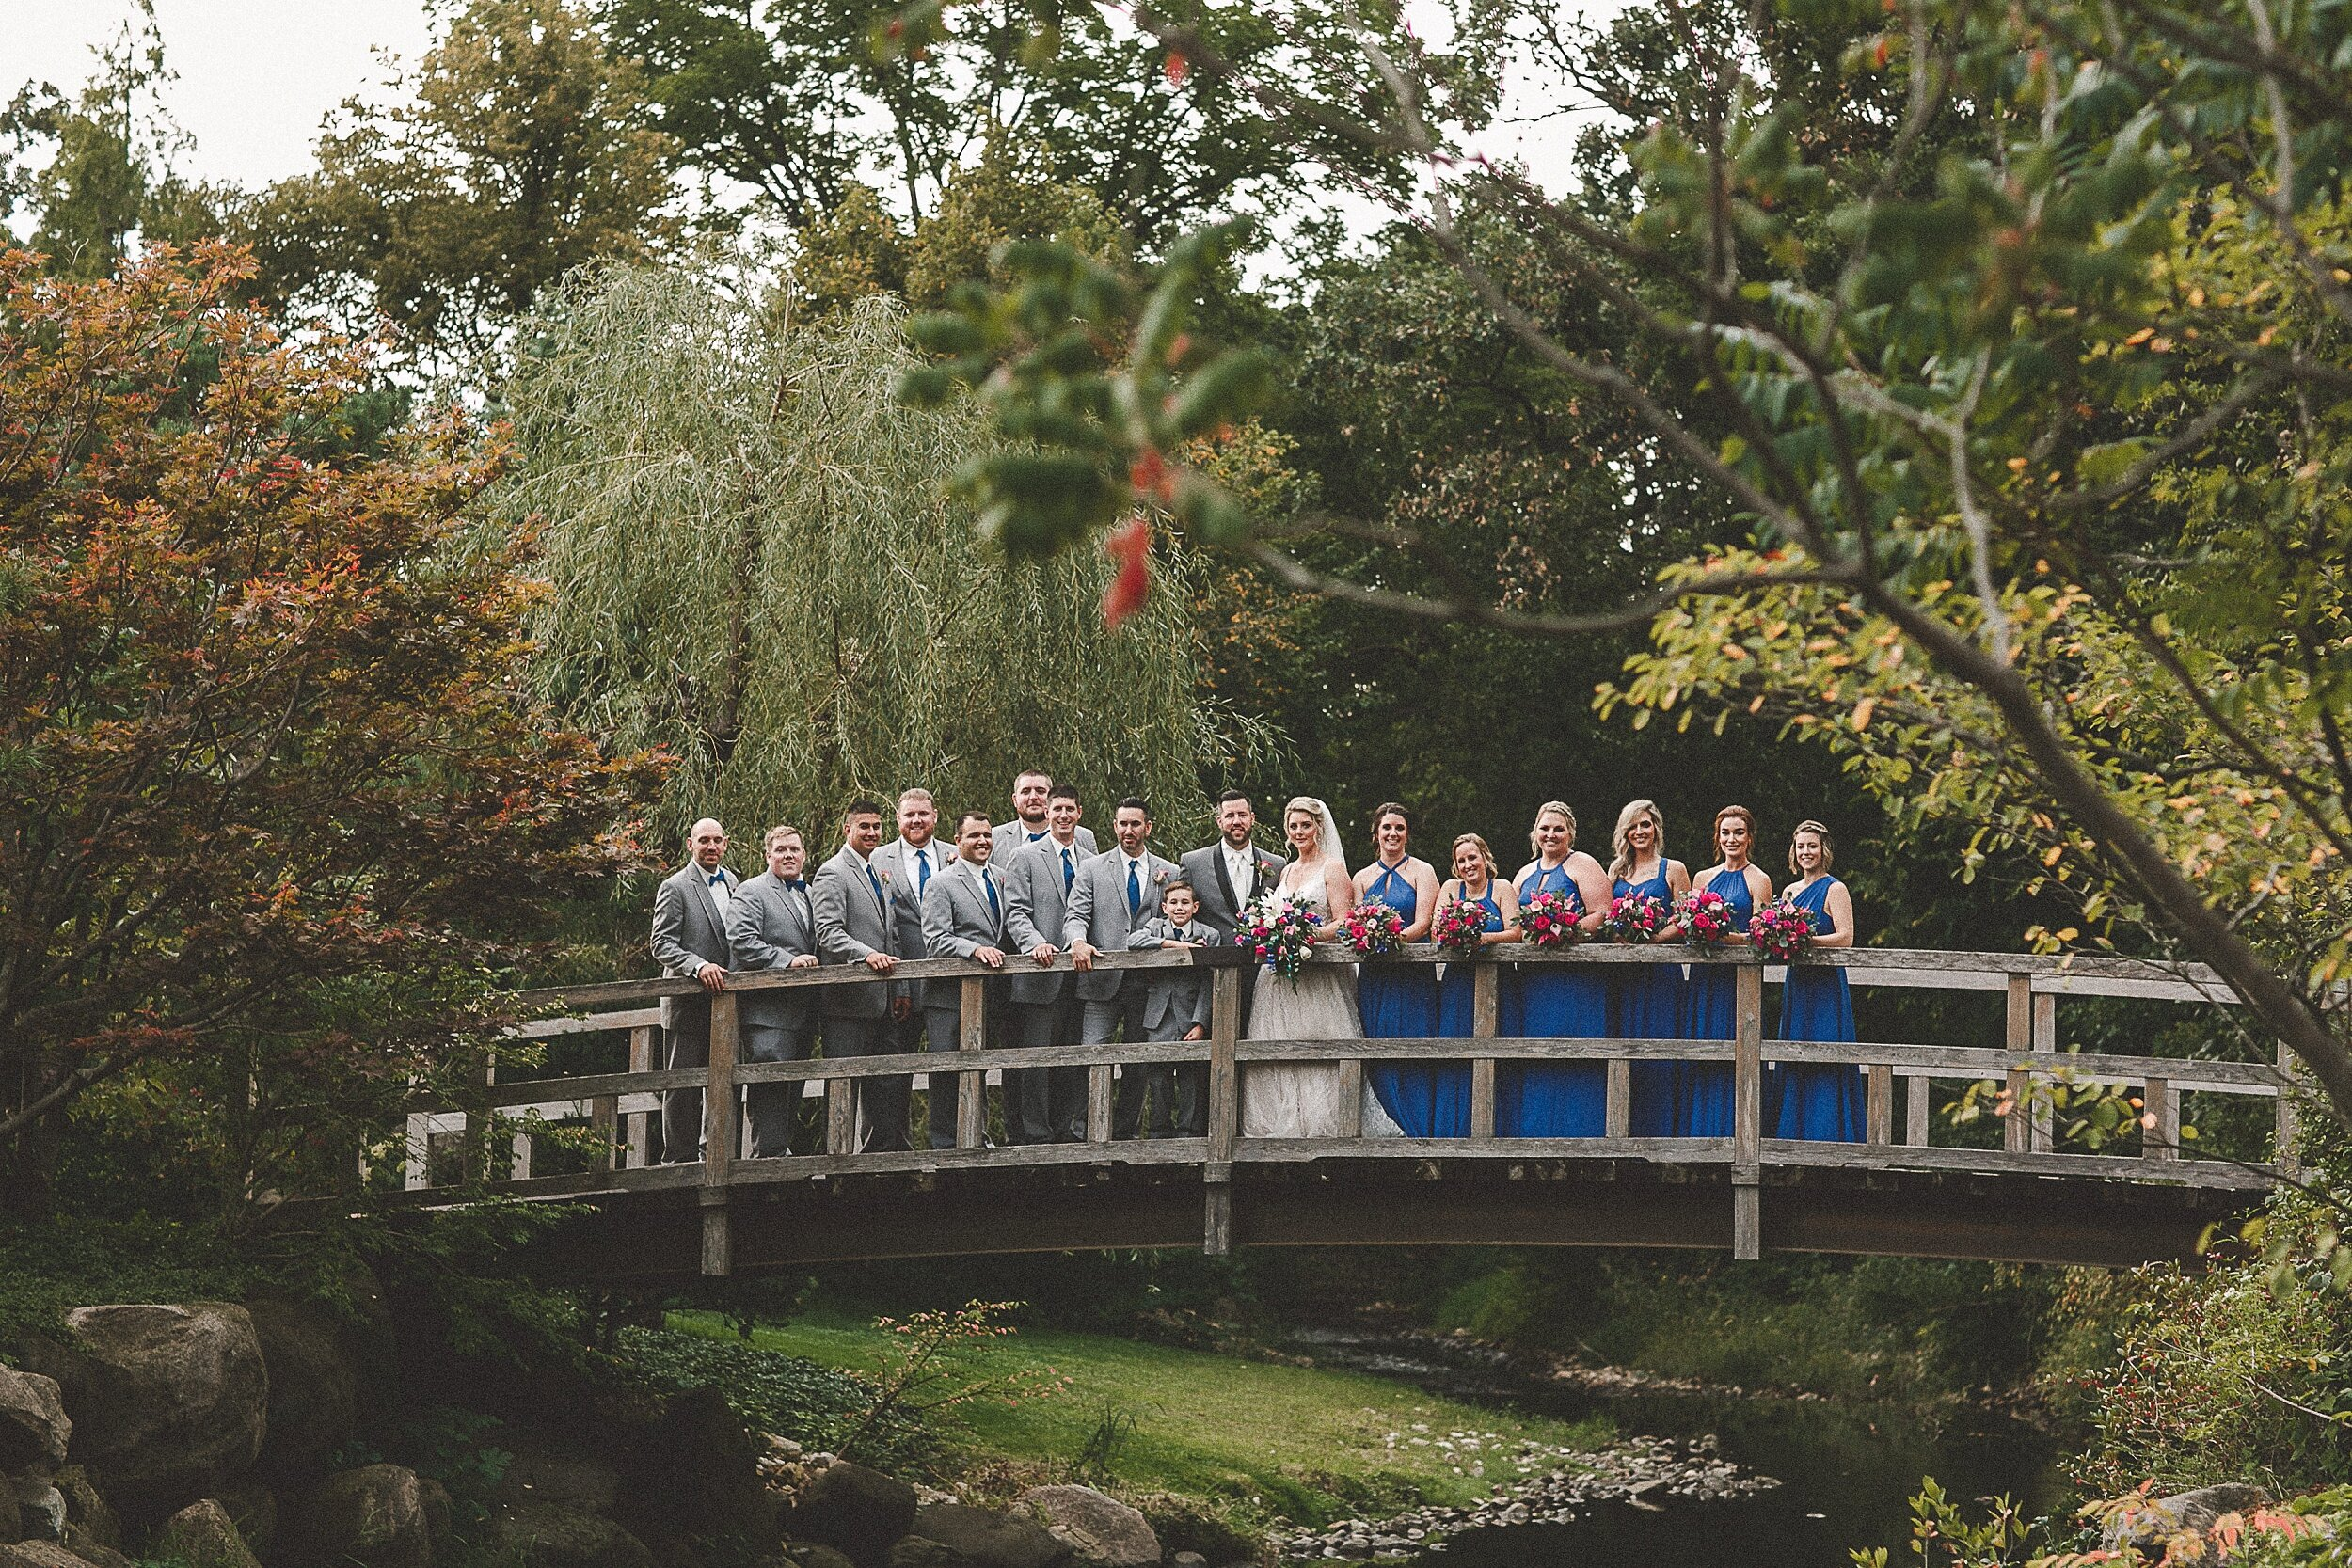 anderson-japanese-gardens-rockford-il-wedding-photos_0150.jpg